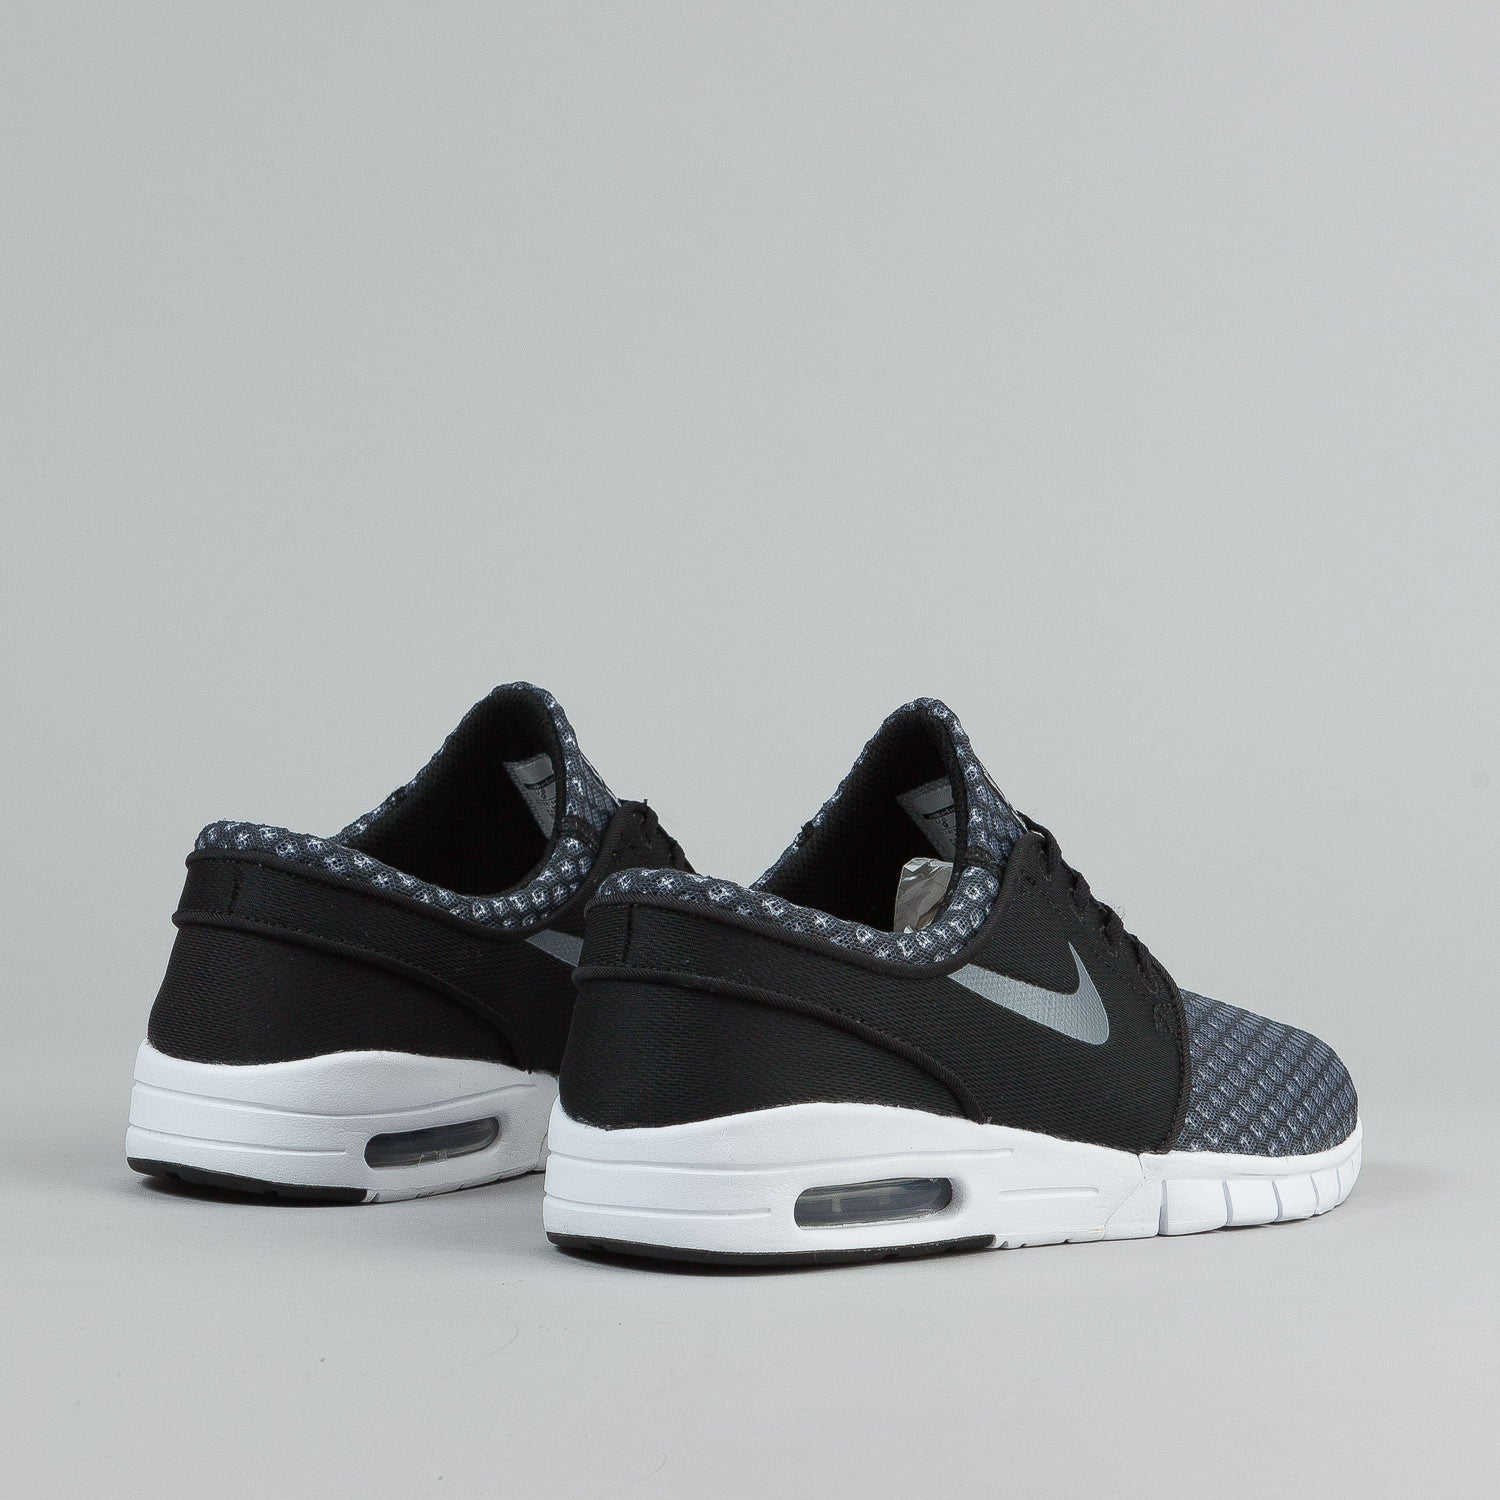 Nike SB Stefan Janoski Max Shoes  - Black / Metallic Cool Grey / White